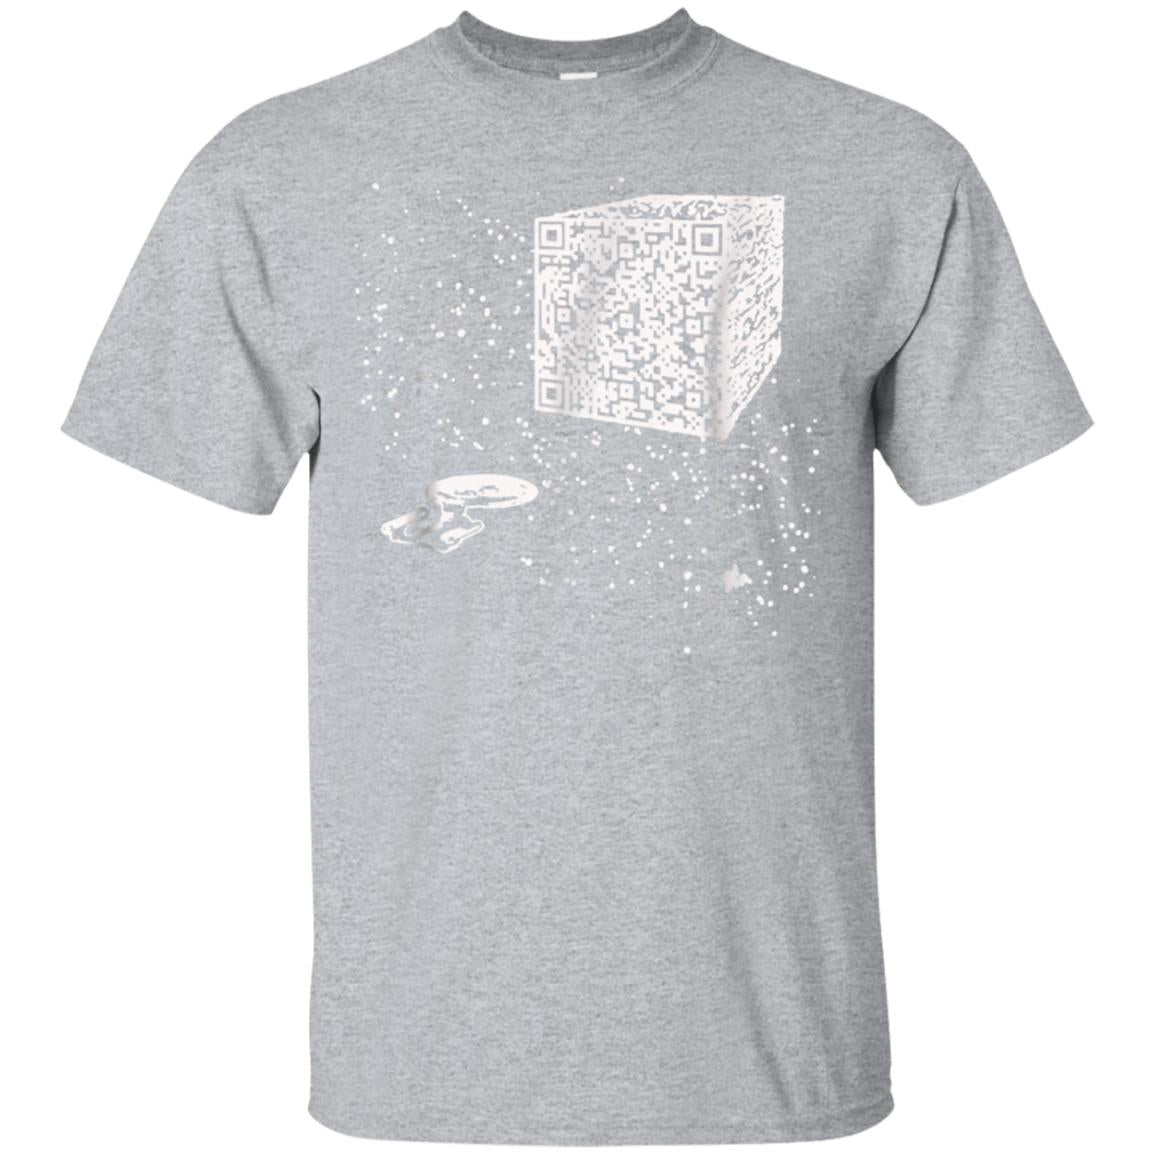 QR Code Cube We are the borg t-shirt 99promocode